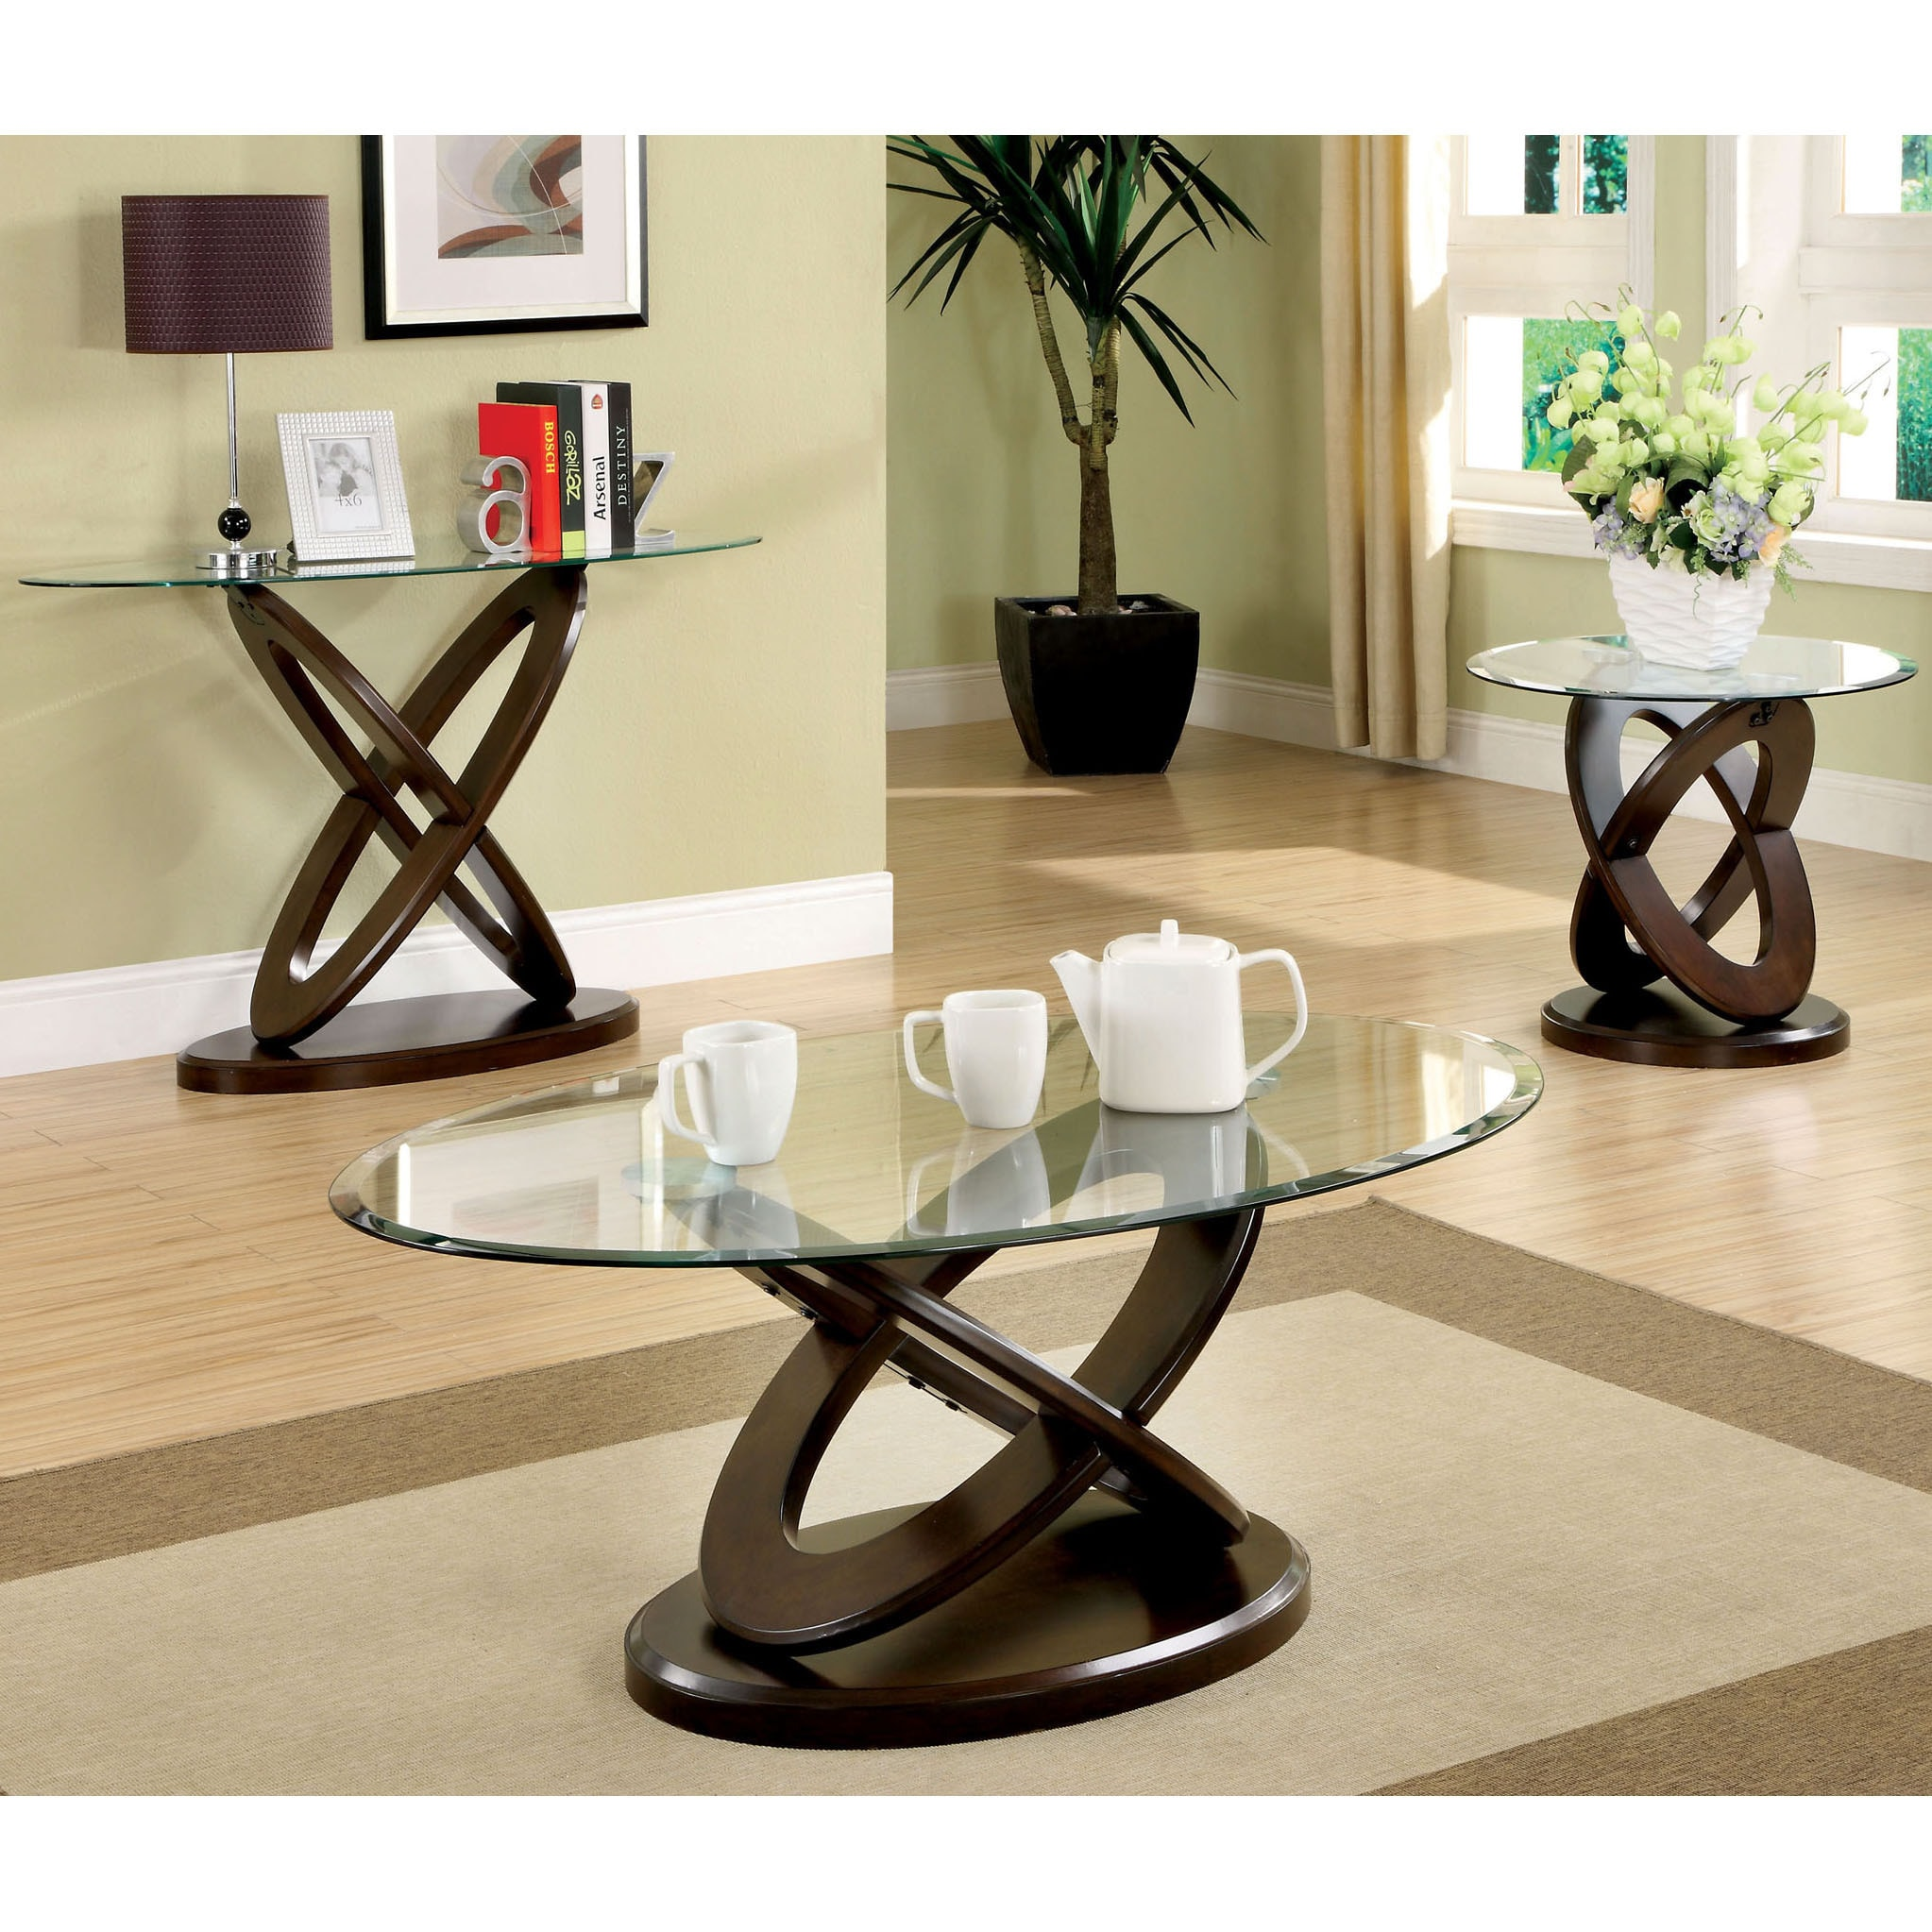 Furniture of America Evalline Oval Glass Top Coffee Table Free